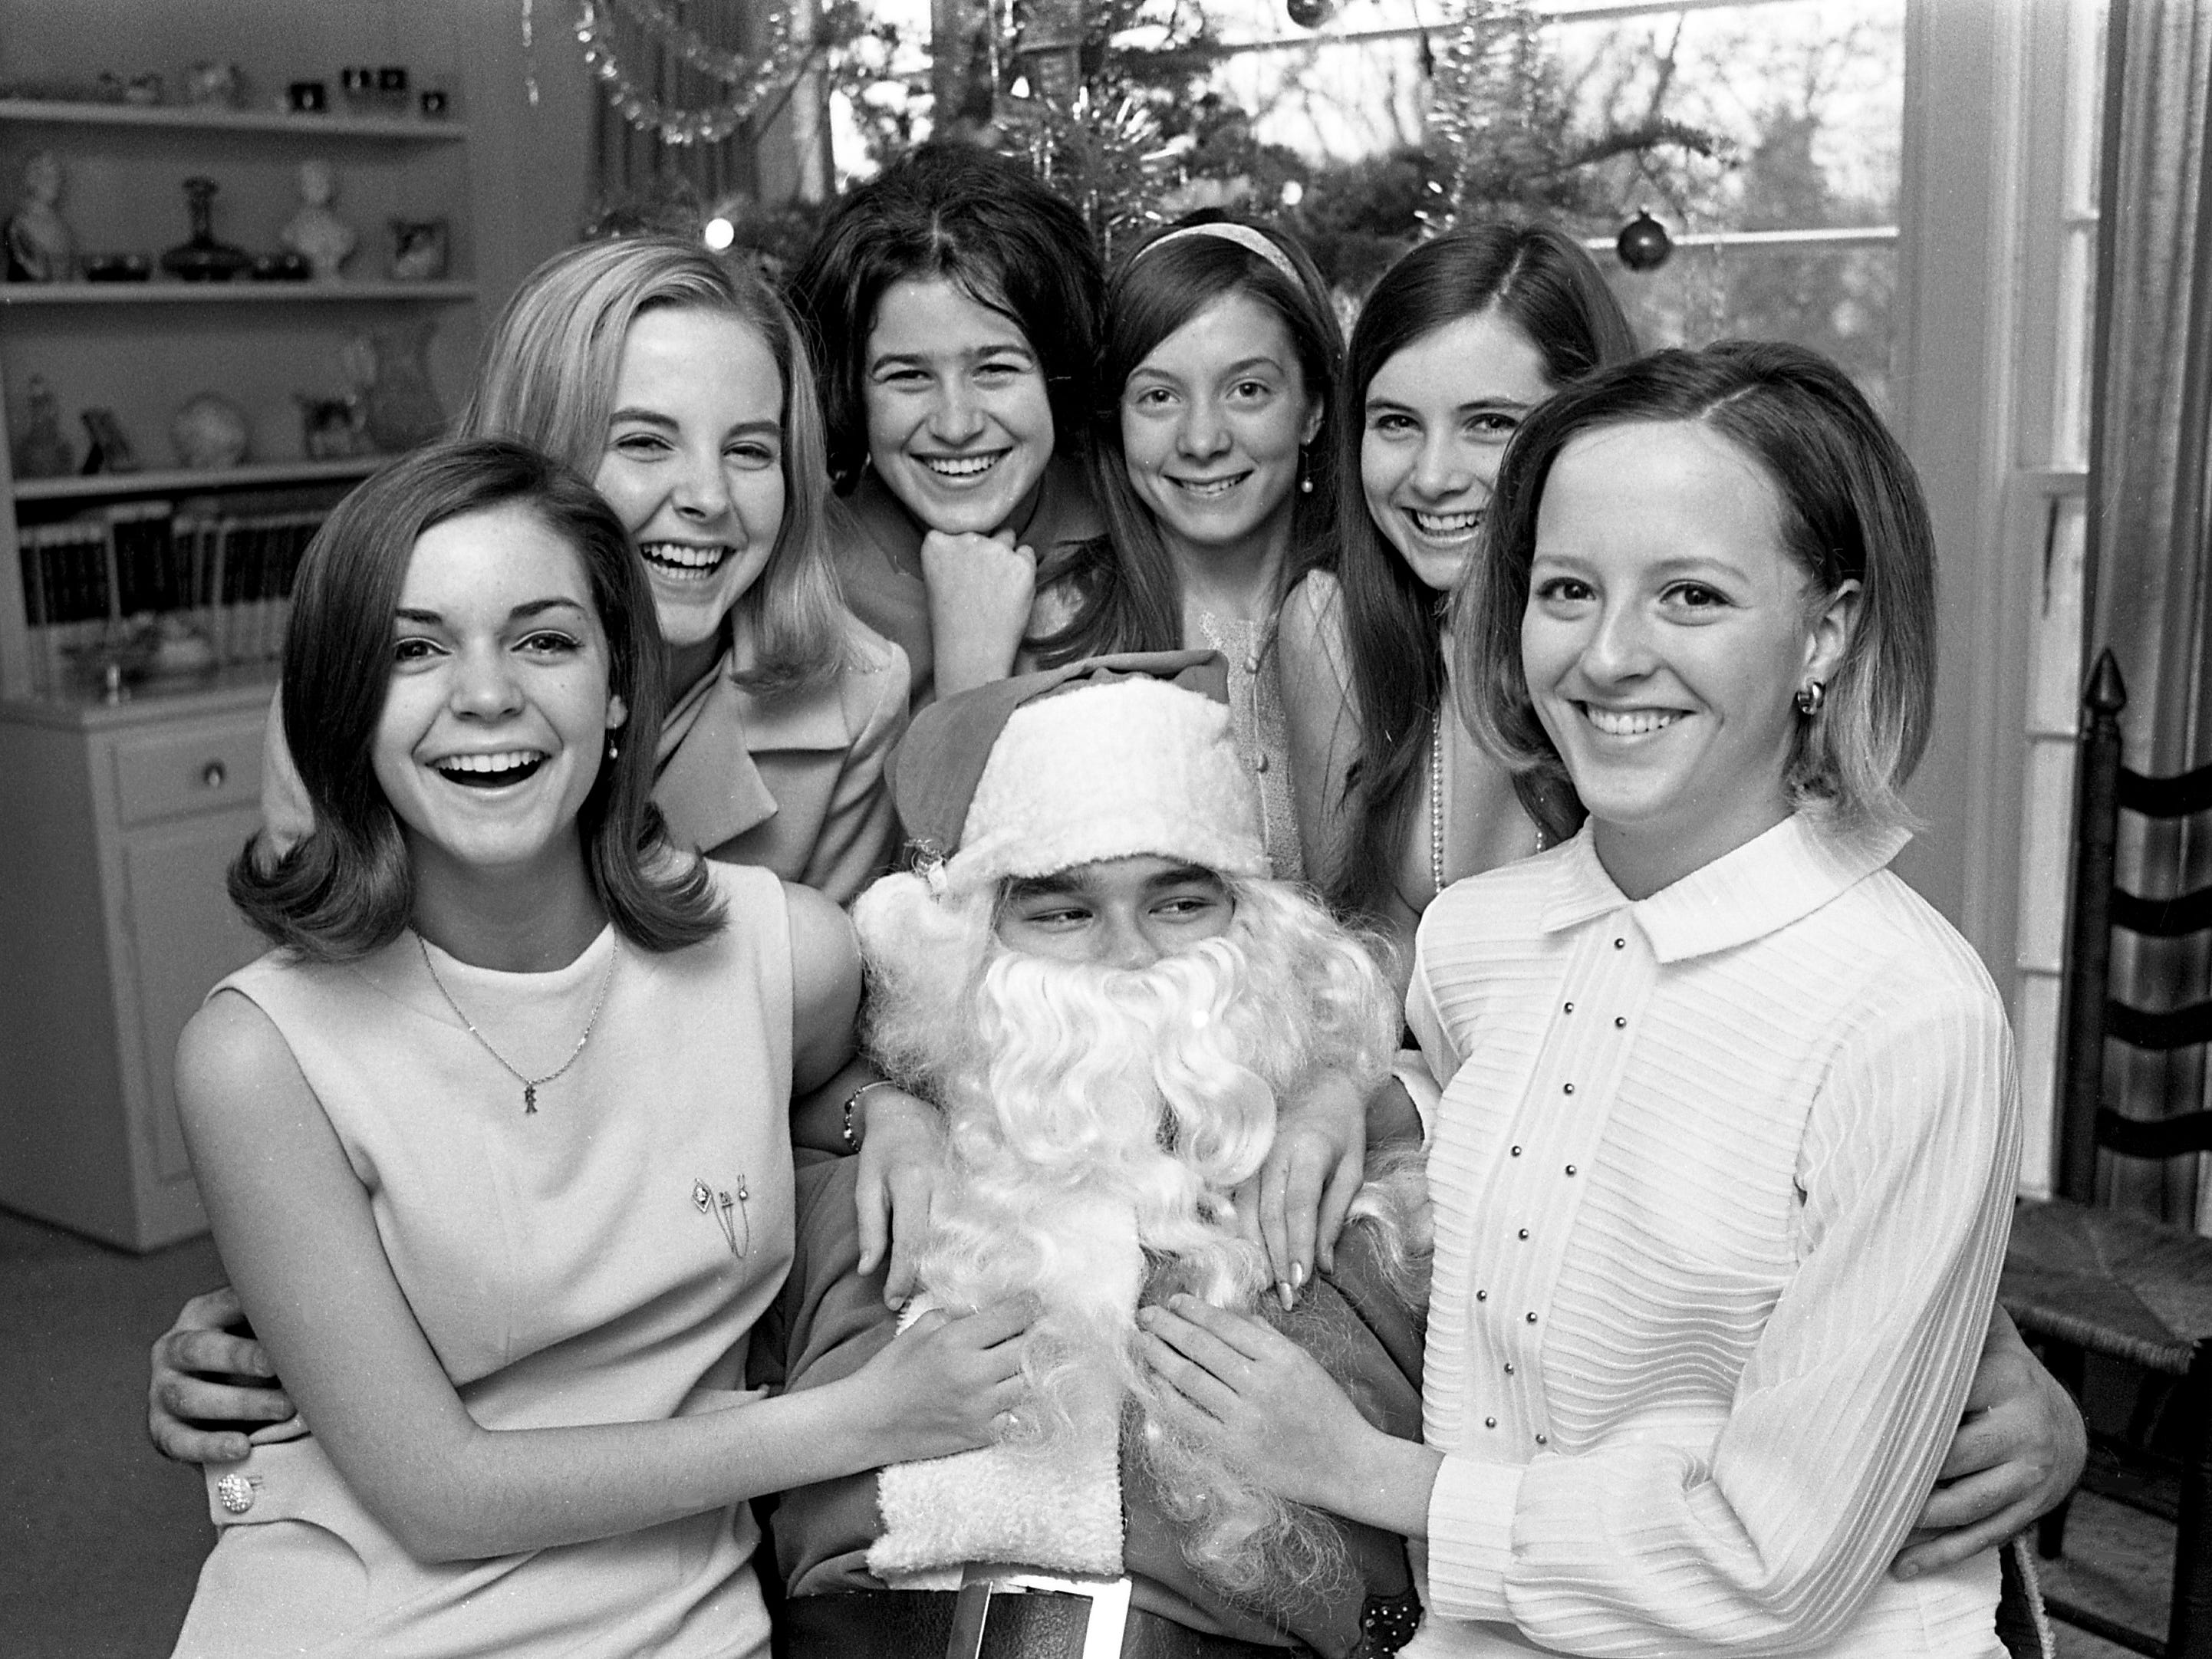 Members of Delta Gamma Beta Sorority entertained Dec. 22, 1968 at a holiday party in honor of their rushes and their mothers at the home of Mrs. Sydney Spellings on West Meade Drive. Giving Santa, played by Mike Kimbrough, a big hug are Miss Ann Melcher, left, Miss Brooks Baker, Miss Suzanne Collier, Miss Debbie Caddington, Miss Debbie Dale and Miss Sydney Spellings.